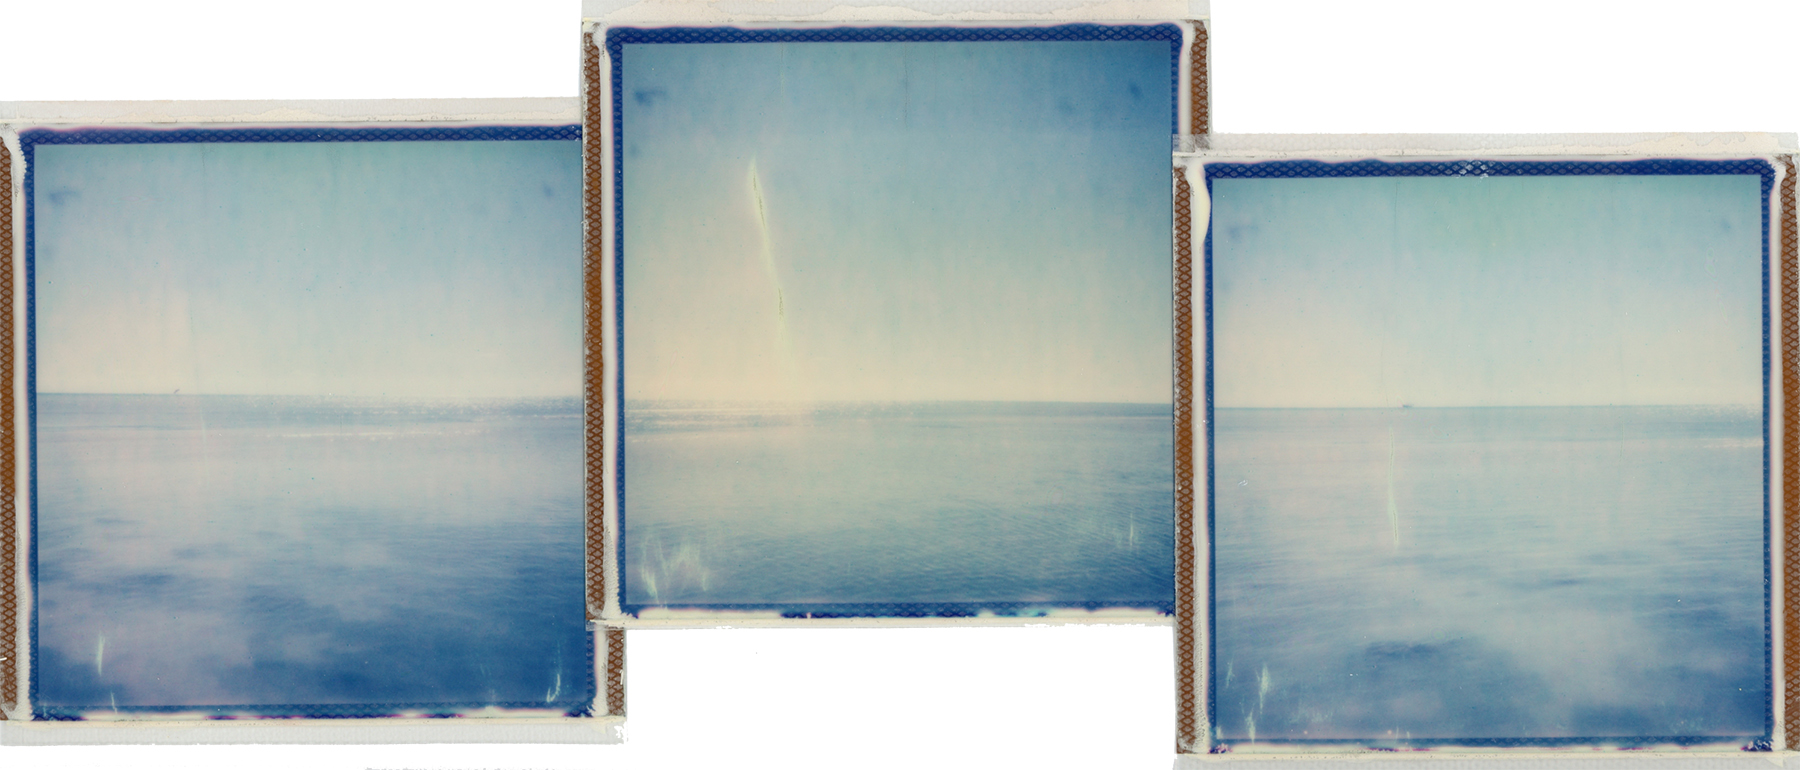 emma j starr polaroid collage 'the distance from here' TSKW key west artist copy.jpg